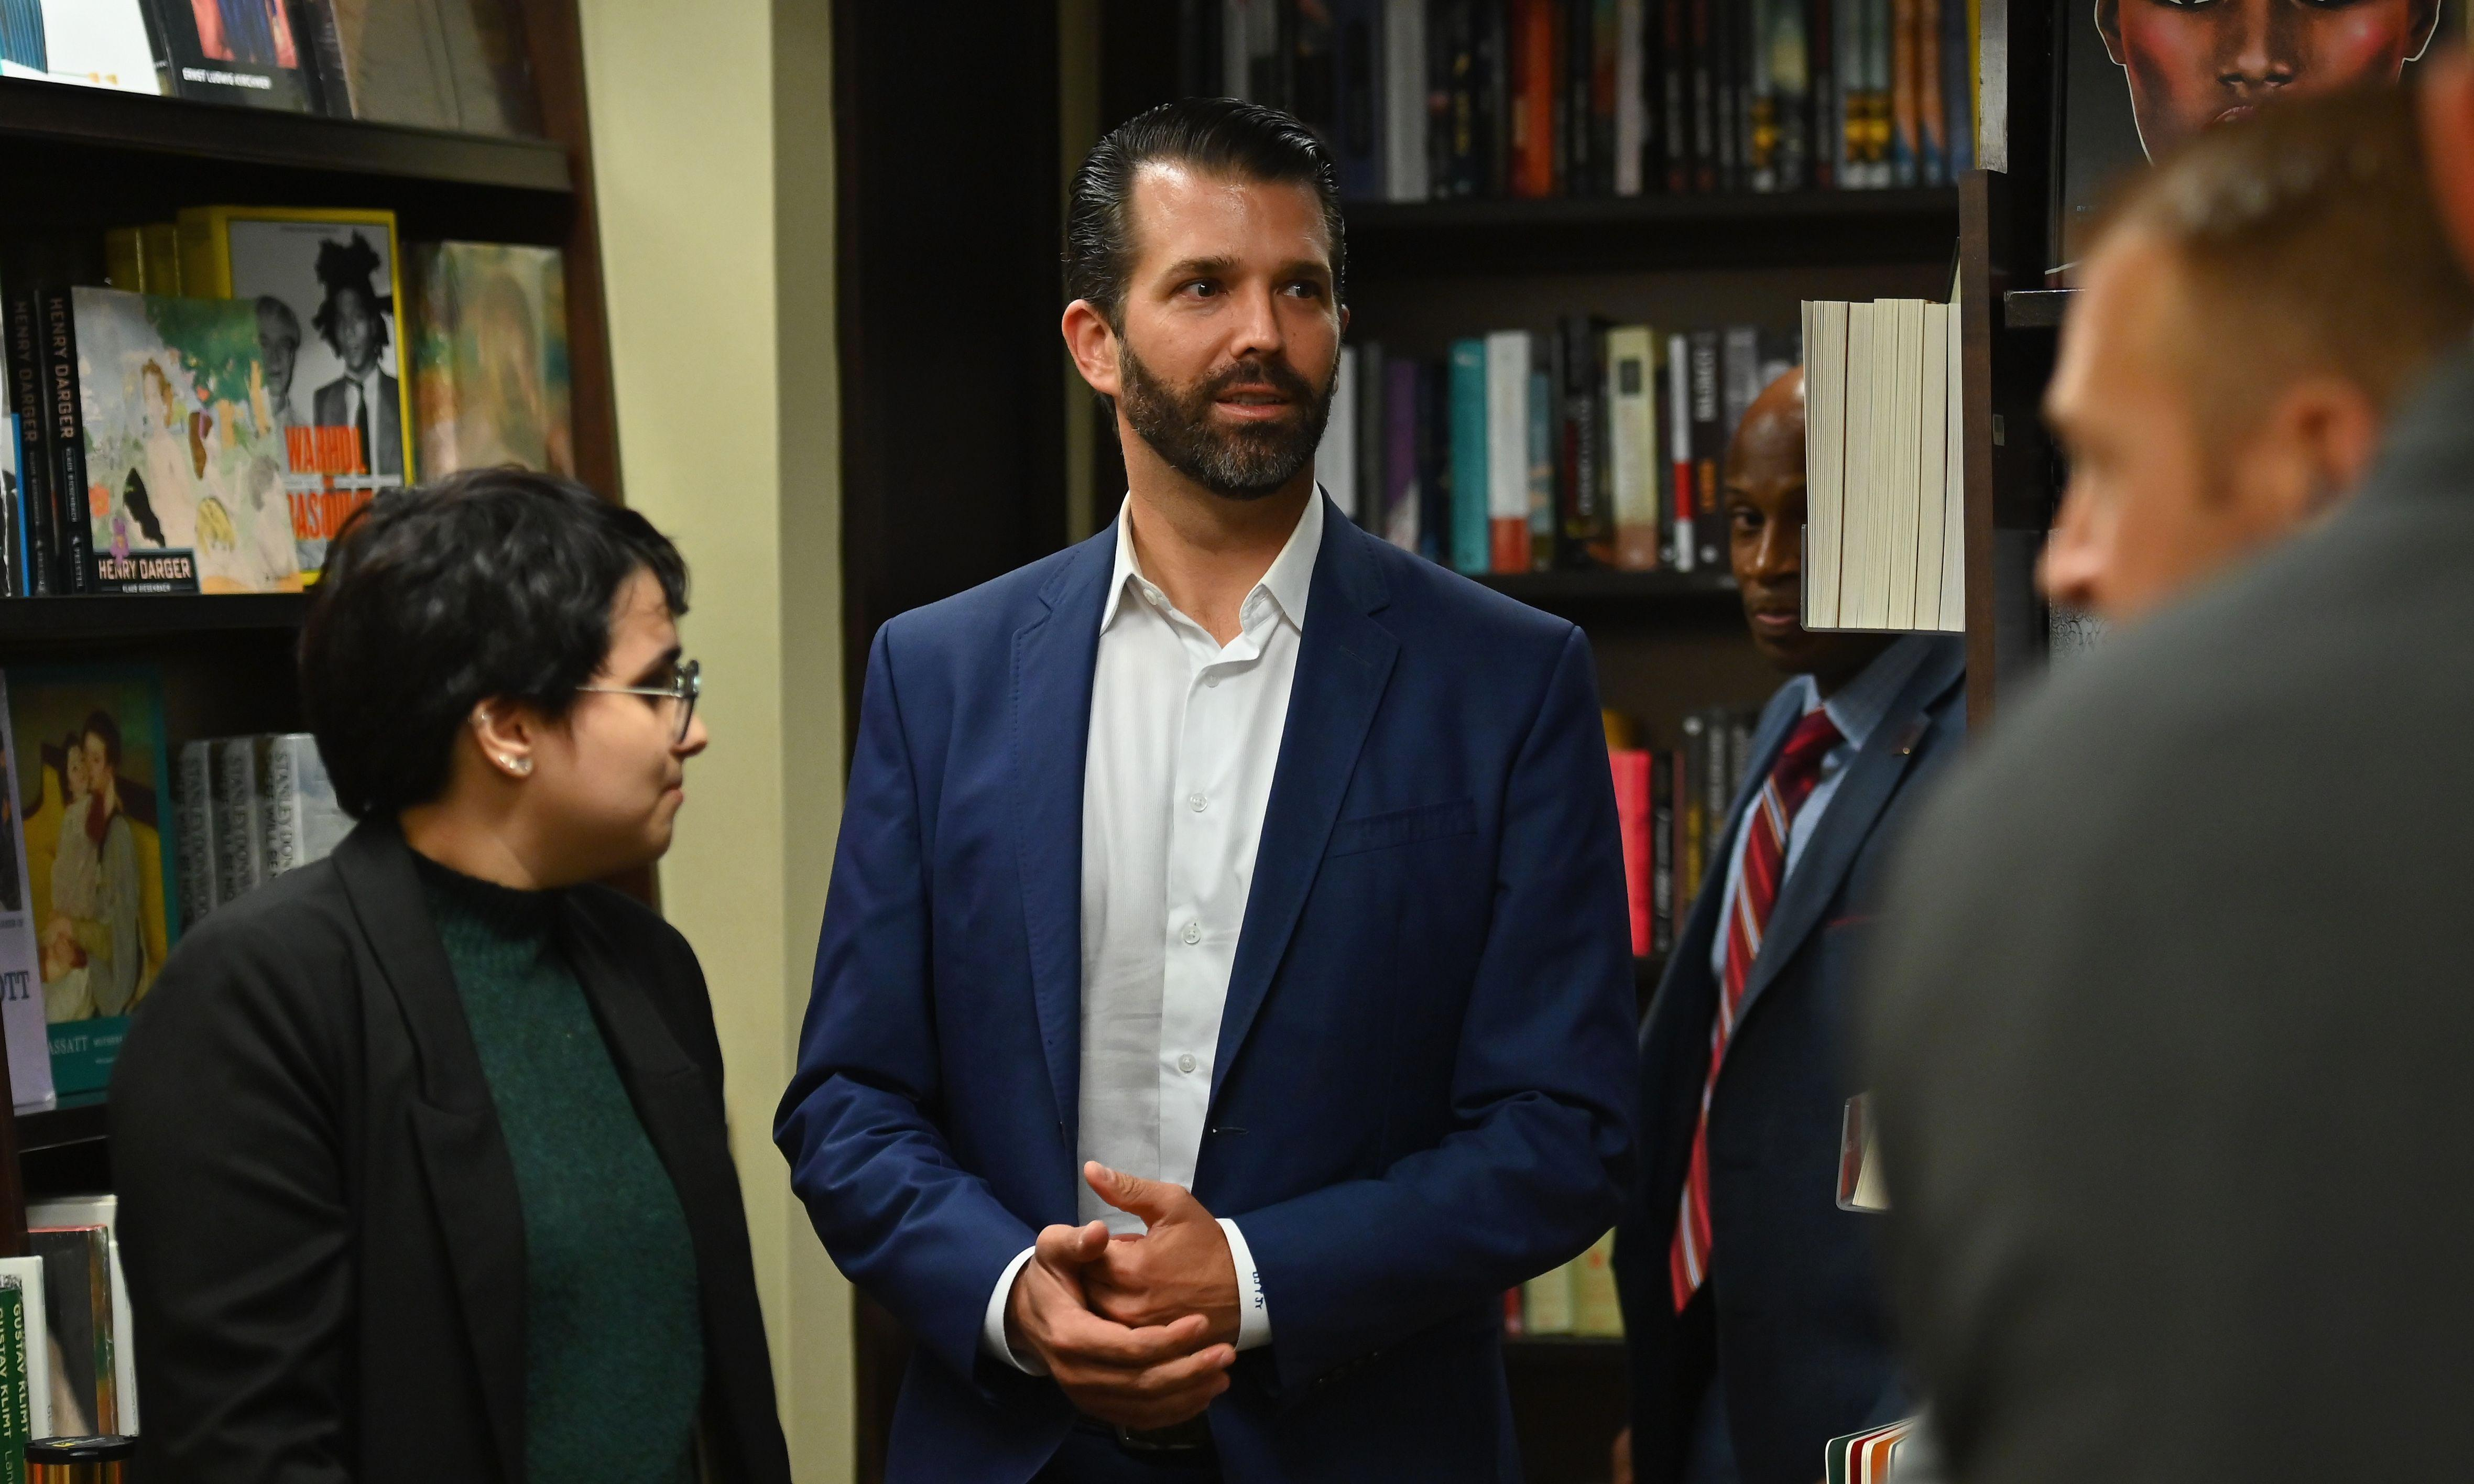 Donald Trump Jr's disastrous book launch may seem funny – but there's a very dark side to the booing